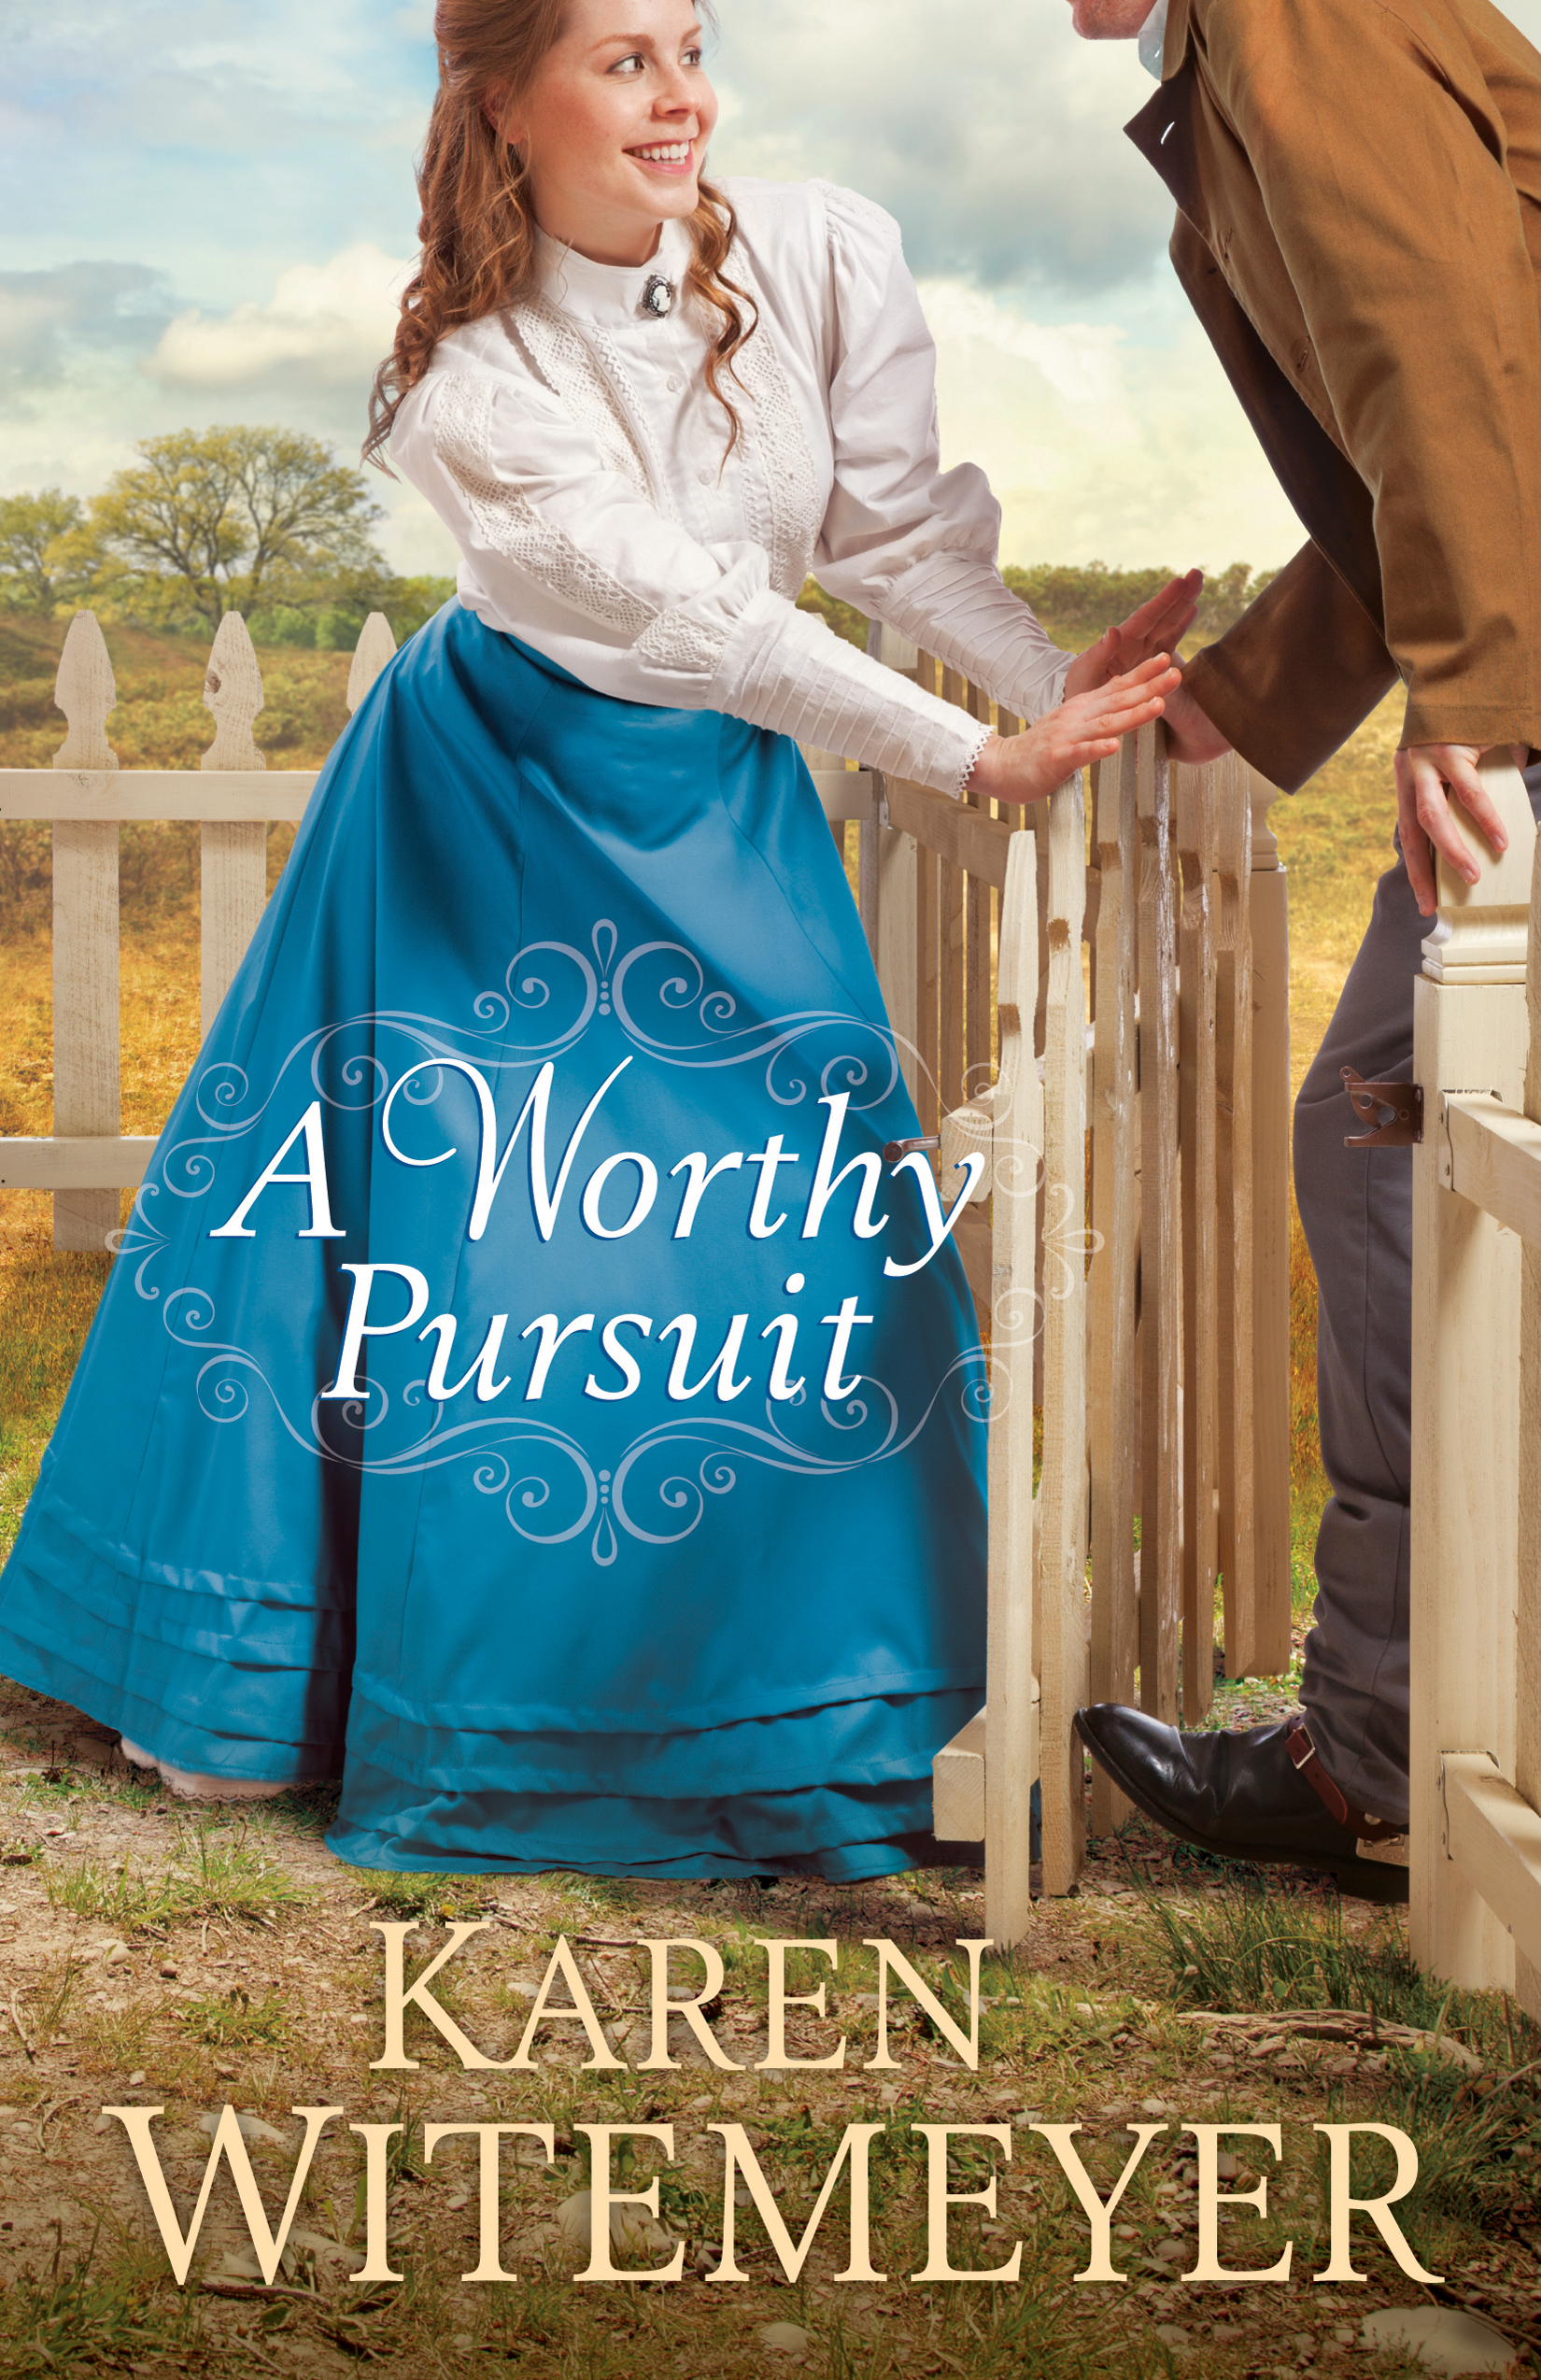 Book review of A Worthy Pursuit by Karen Witemeyer (Bethany House) by papertapepins